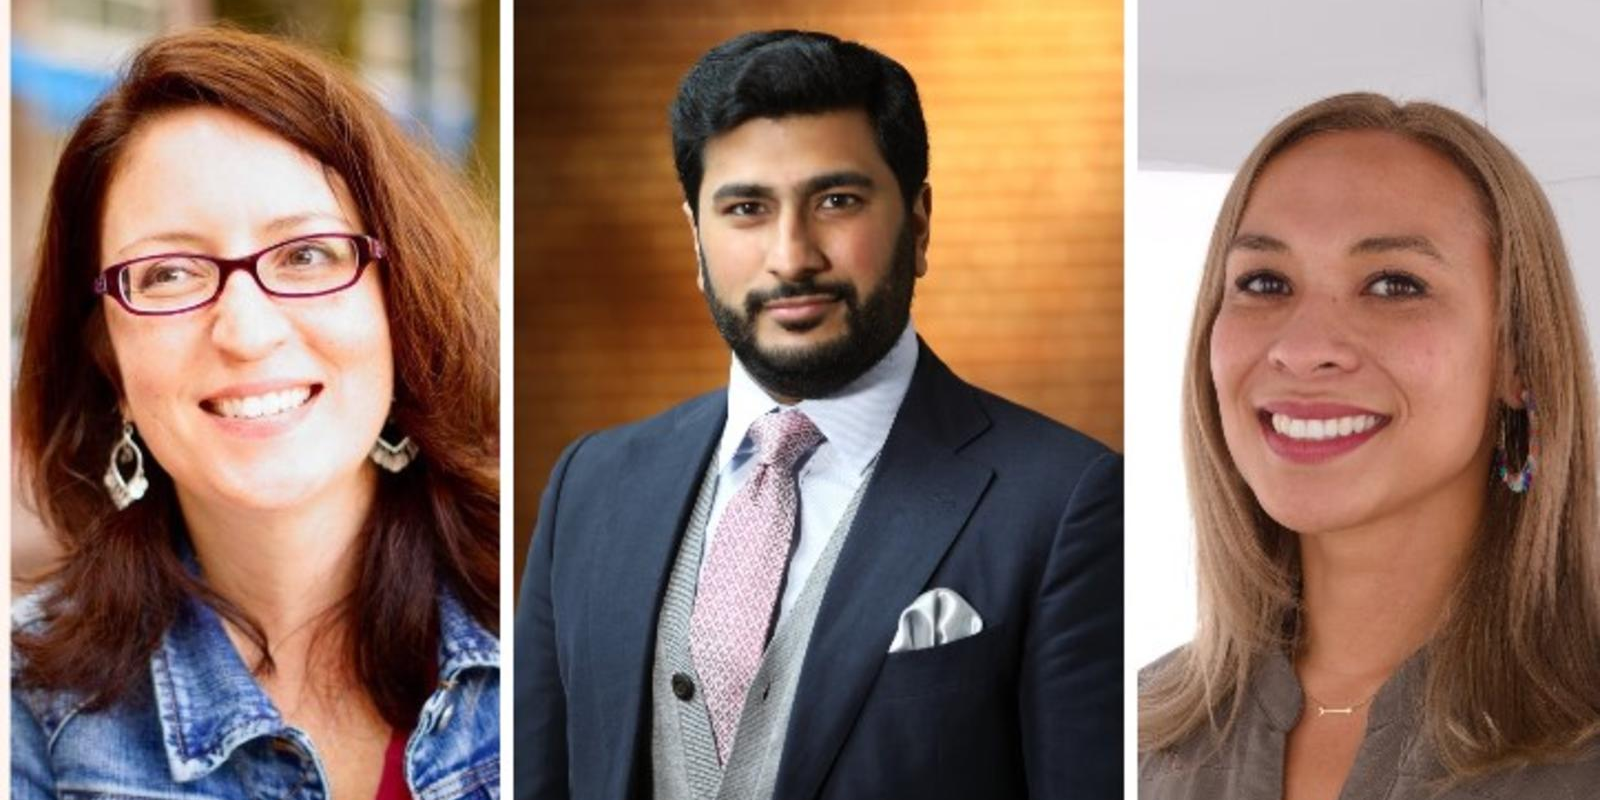 [WEBINAR - Yale Alumni] Dress to Impress: Rules of Style for the 21st Century